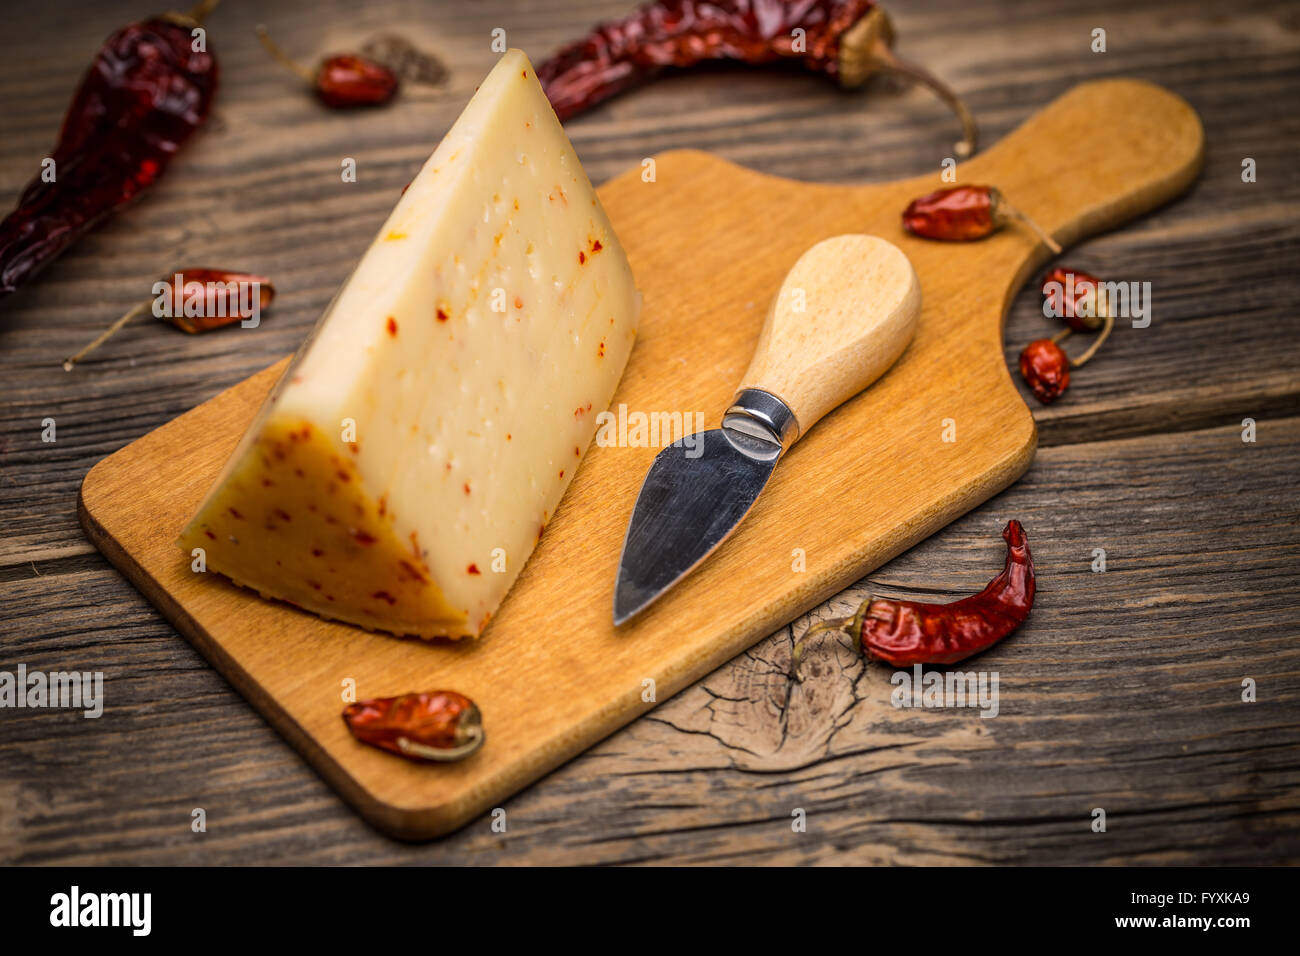 Piece of artisan cheese with chilli on wooden cutting board - Stock Image